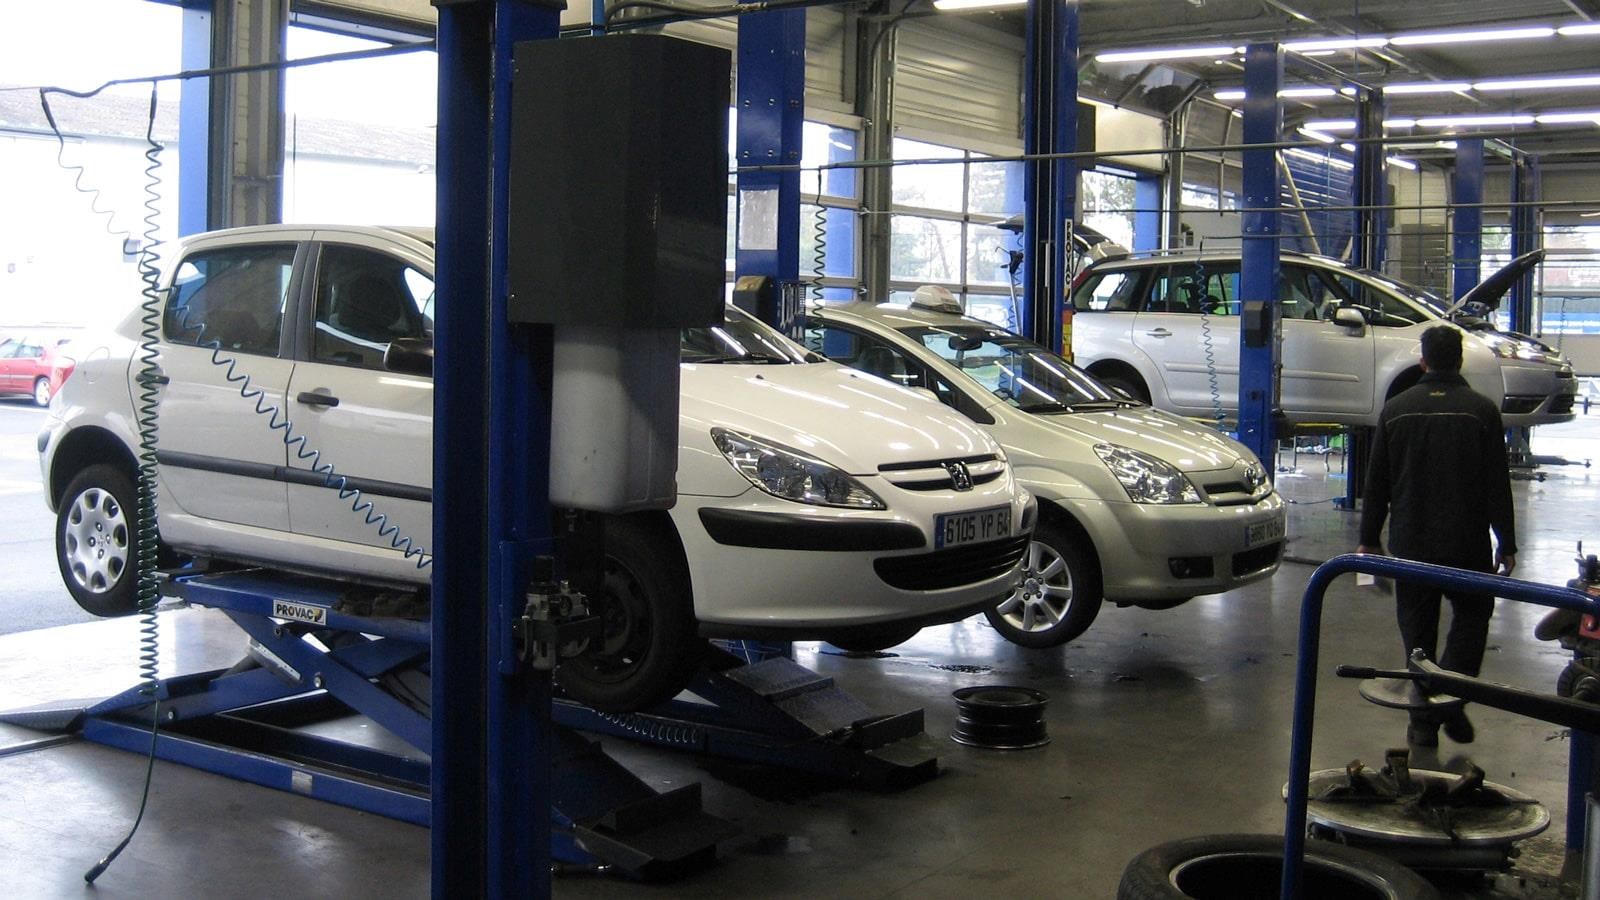 Cars hoisted up for inspection by Norauto mechanics